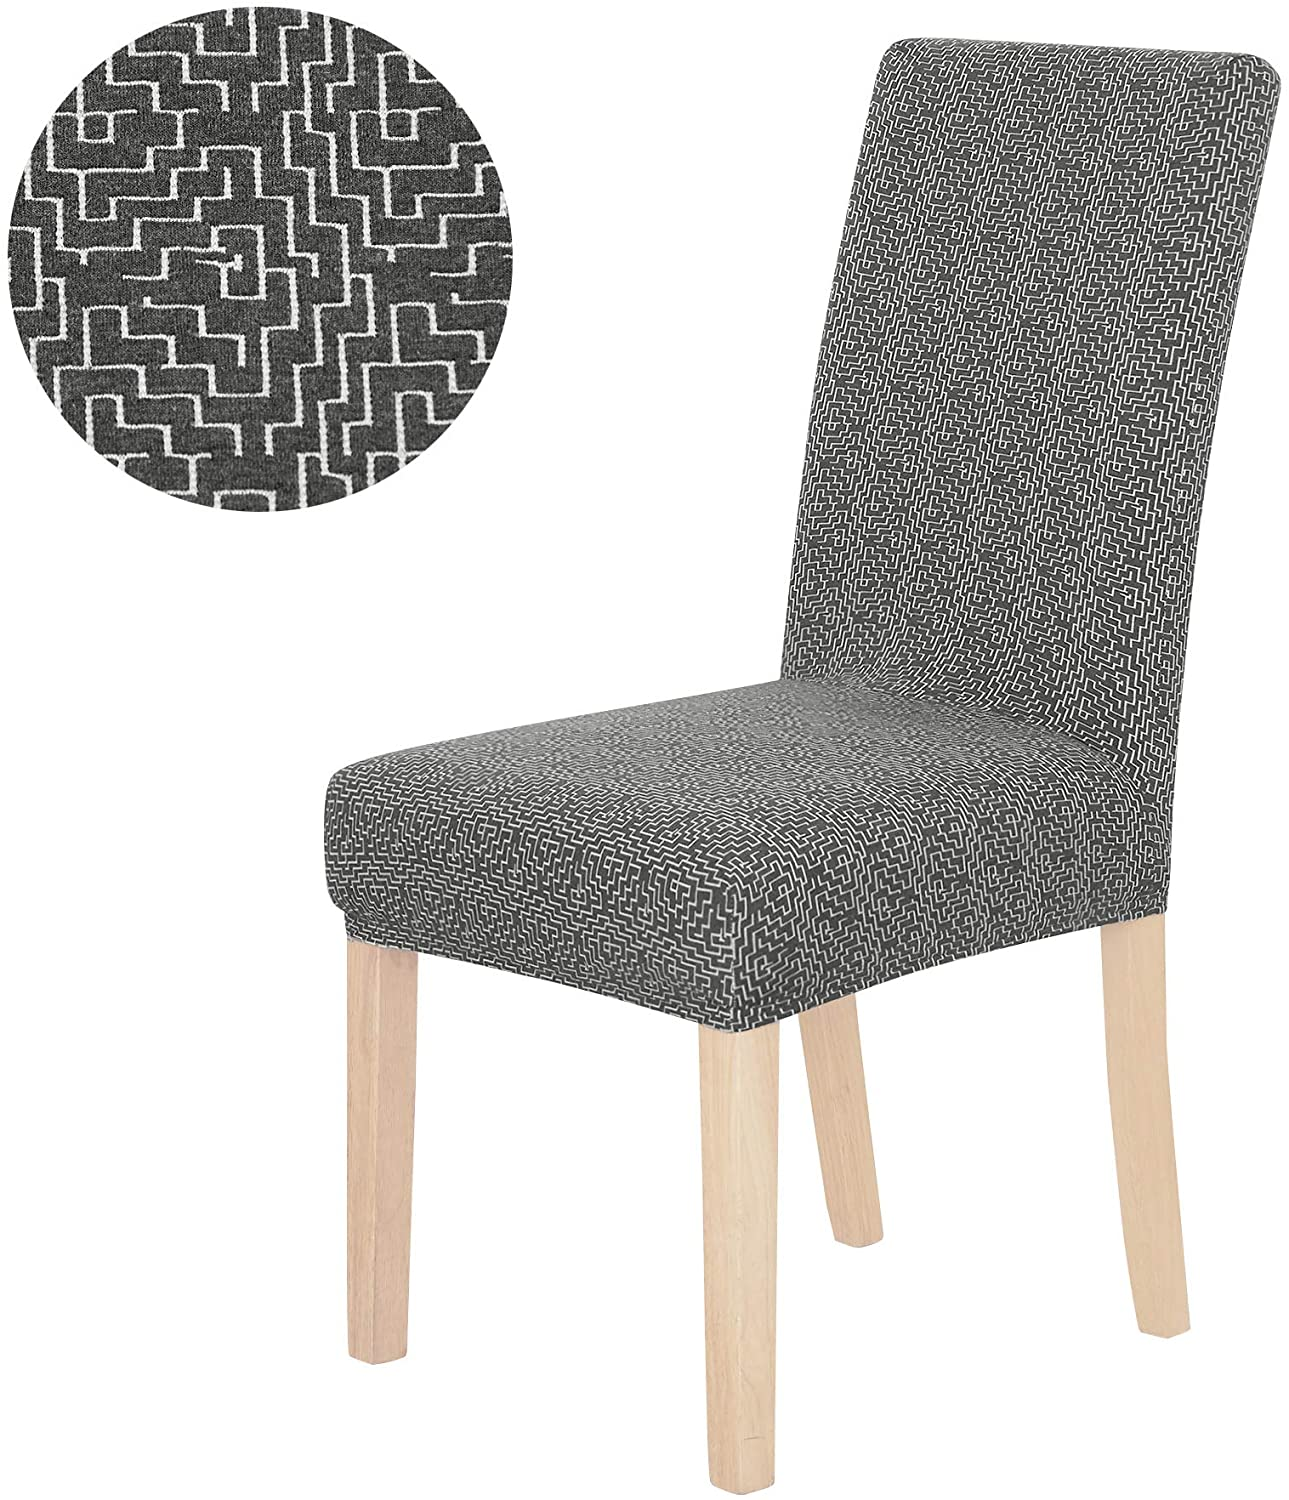 Deconovo Soft Knit Jacquard Chair Cover Removable Washable Slipcover for Dining Room Party Seat Protector Set of 2 Dark Grey